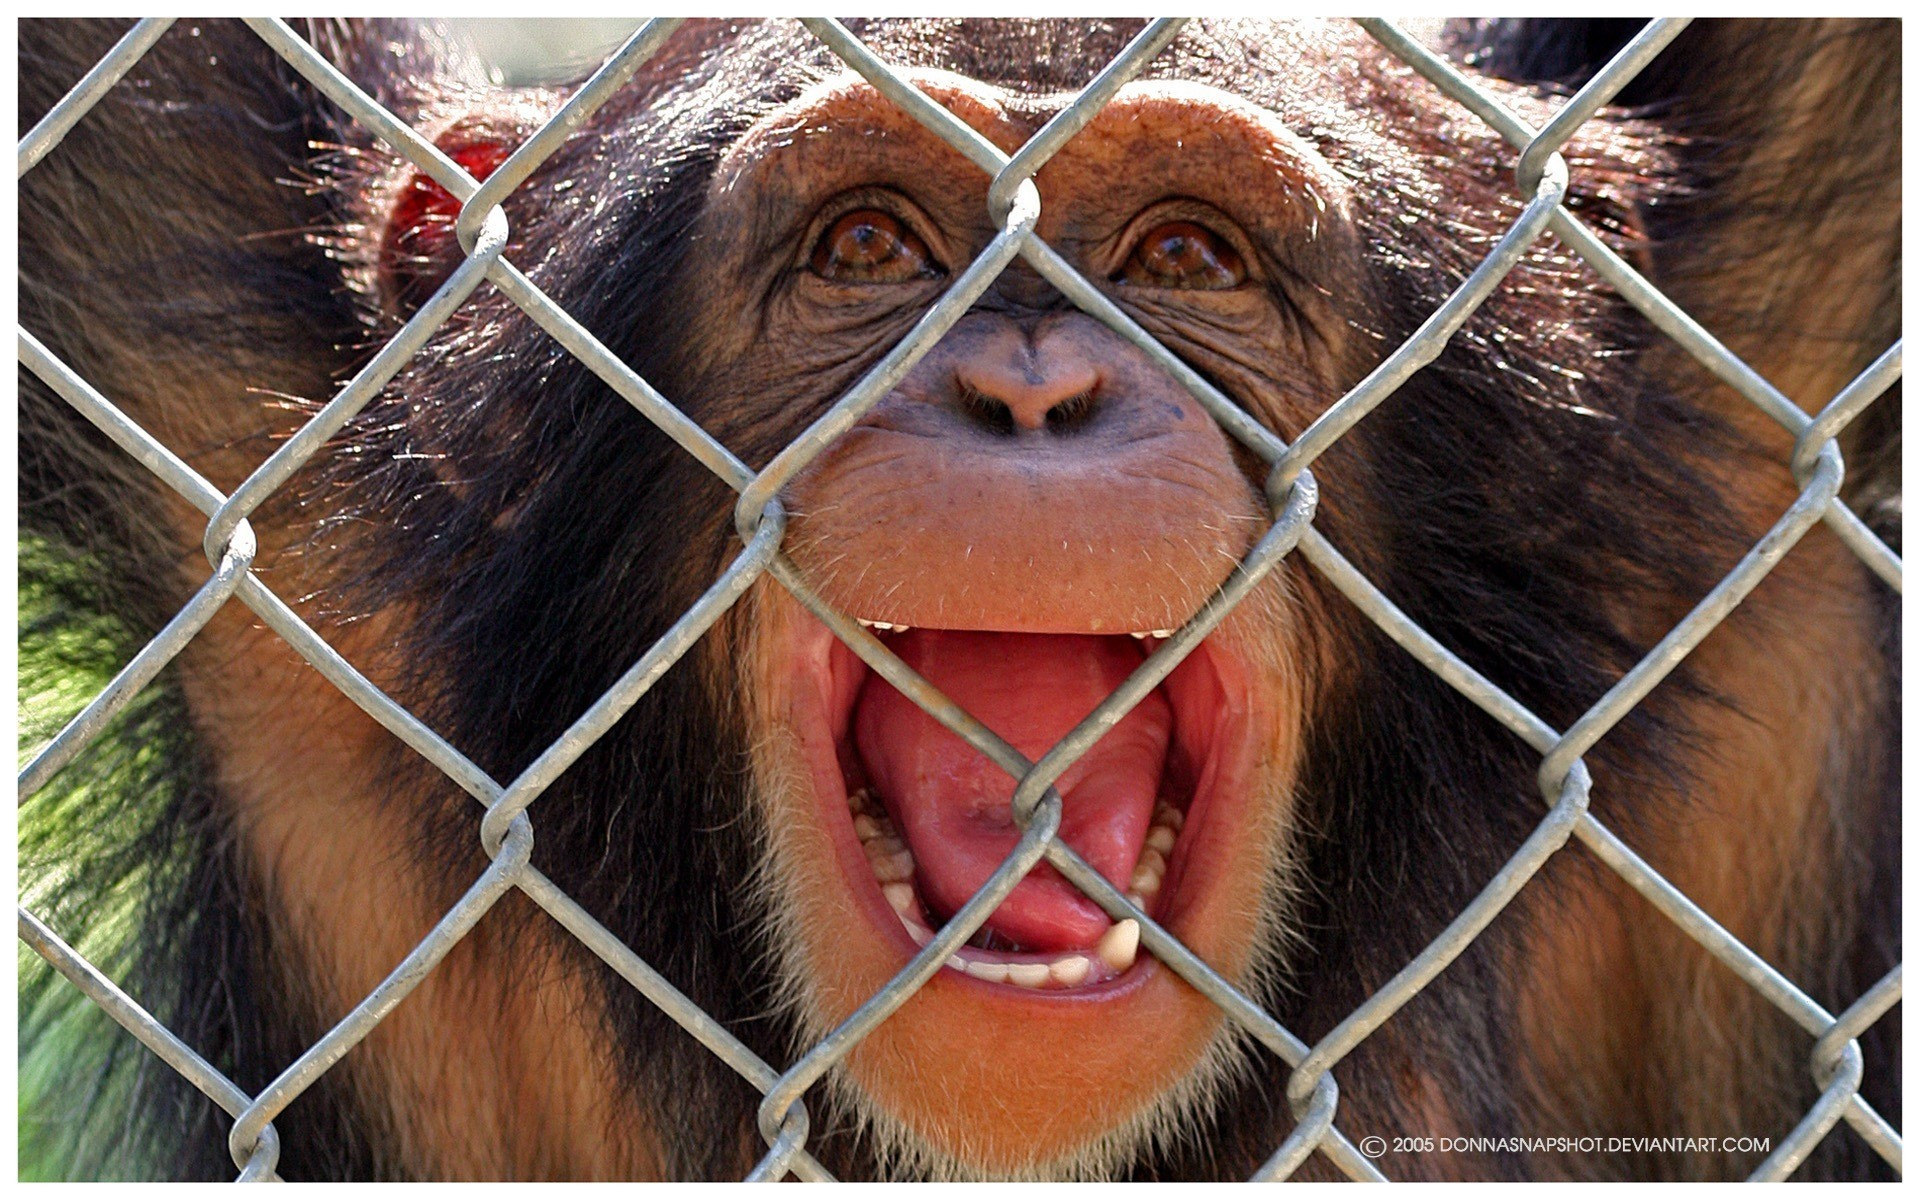 21393 download wallpaper Animals, Monkeys screensavers and pictures for free